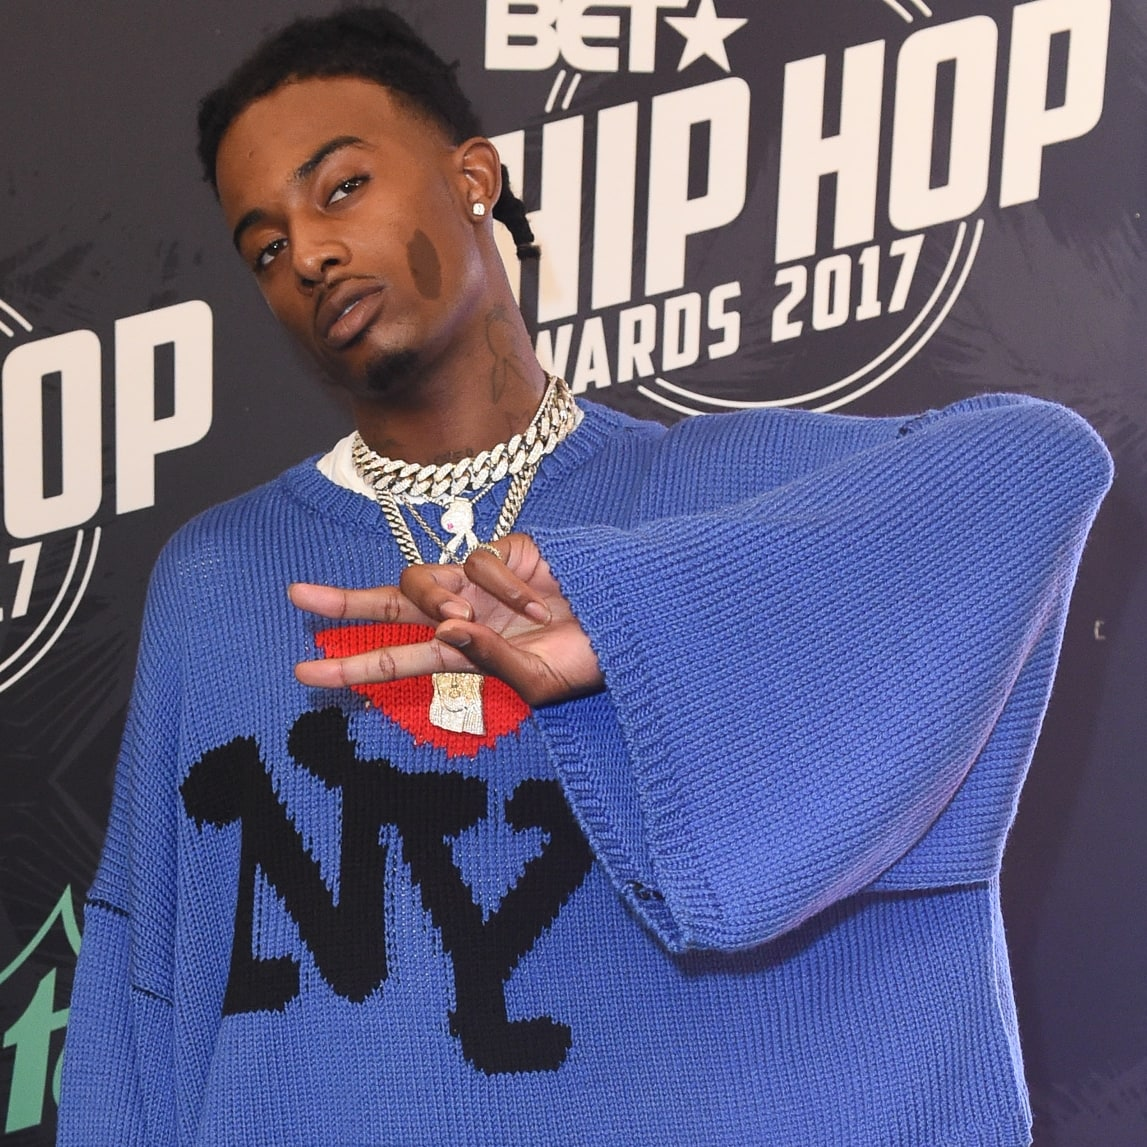 Australian rapper Iggy Azalea has been linked with American rapper Playboi Carti in an on-and-off relationship since 2018